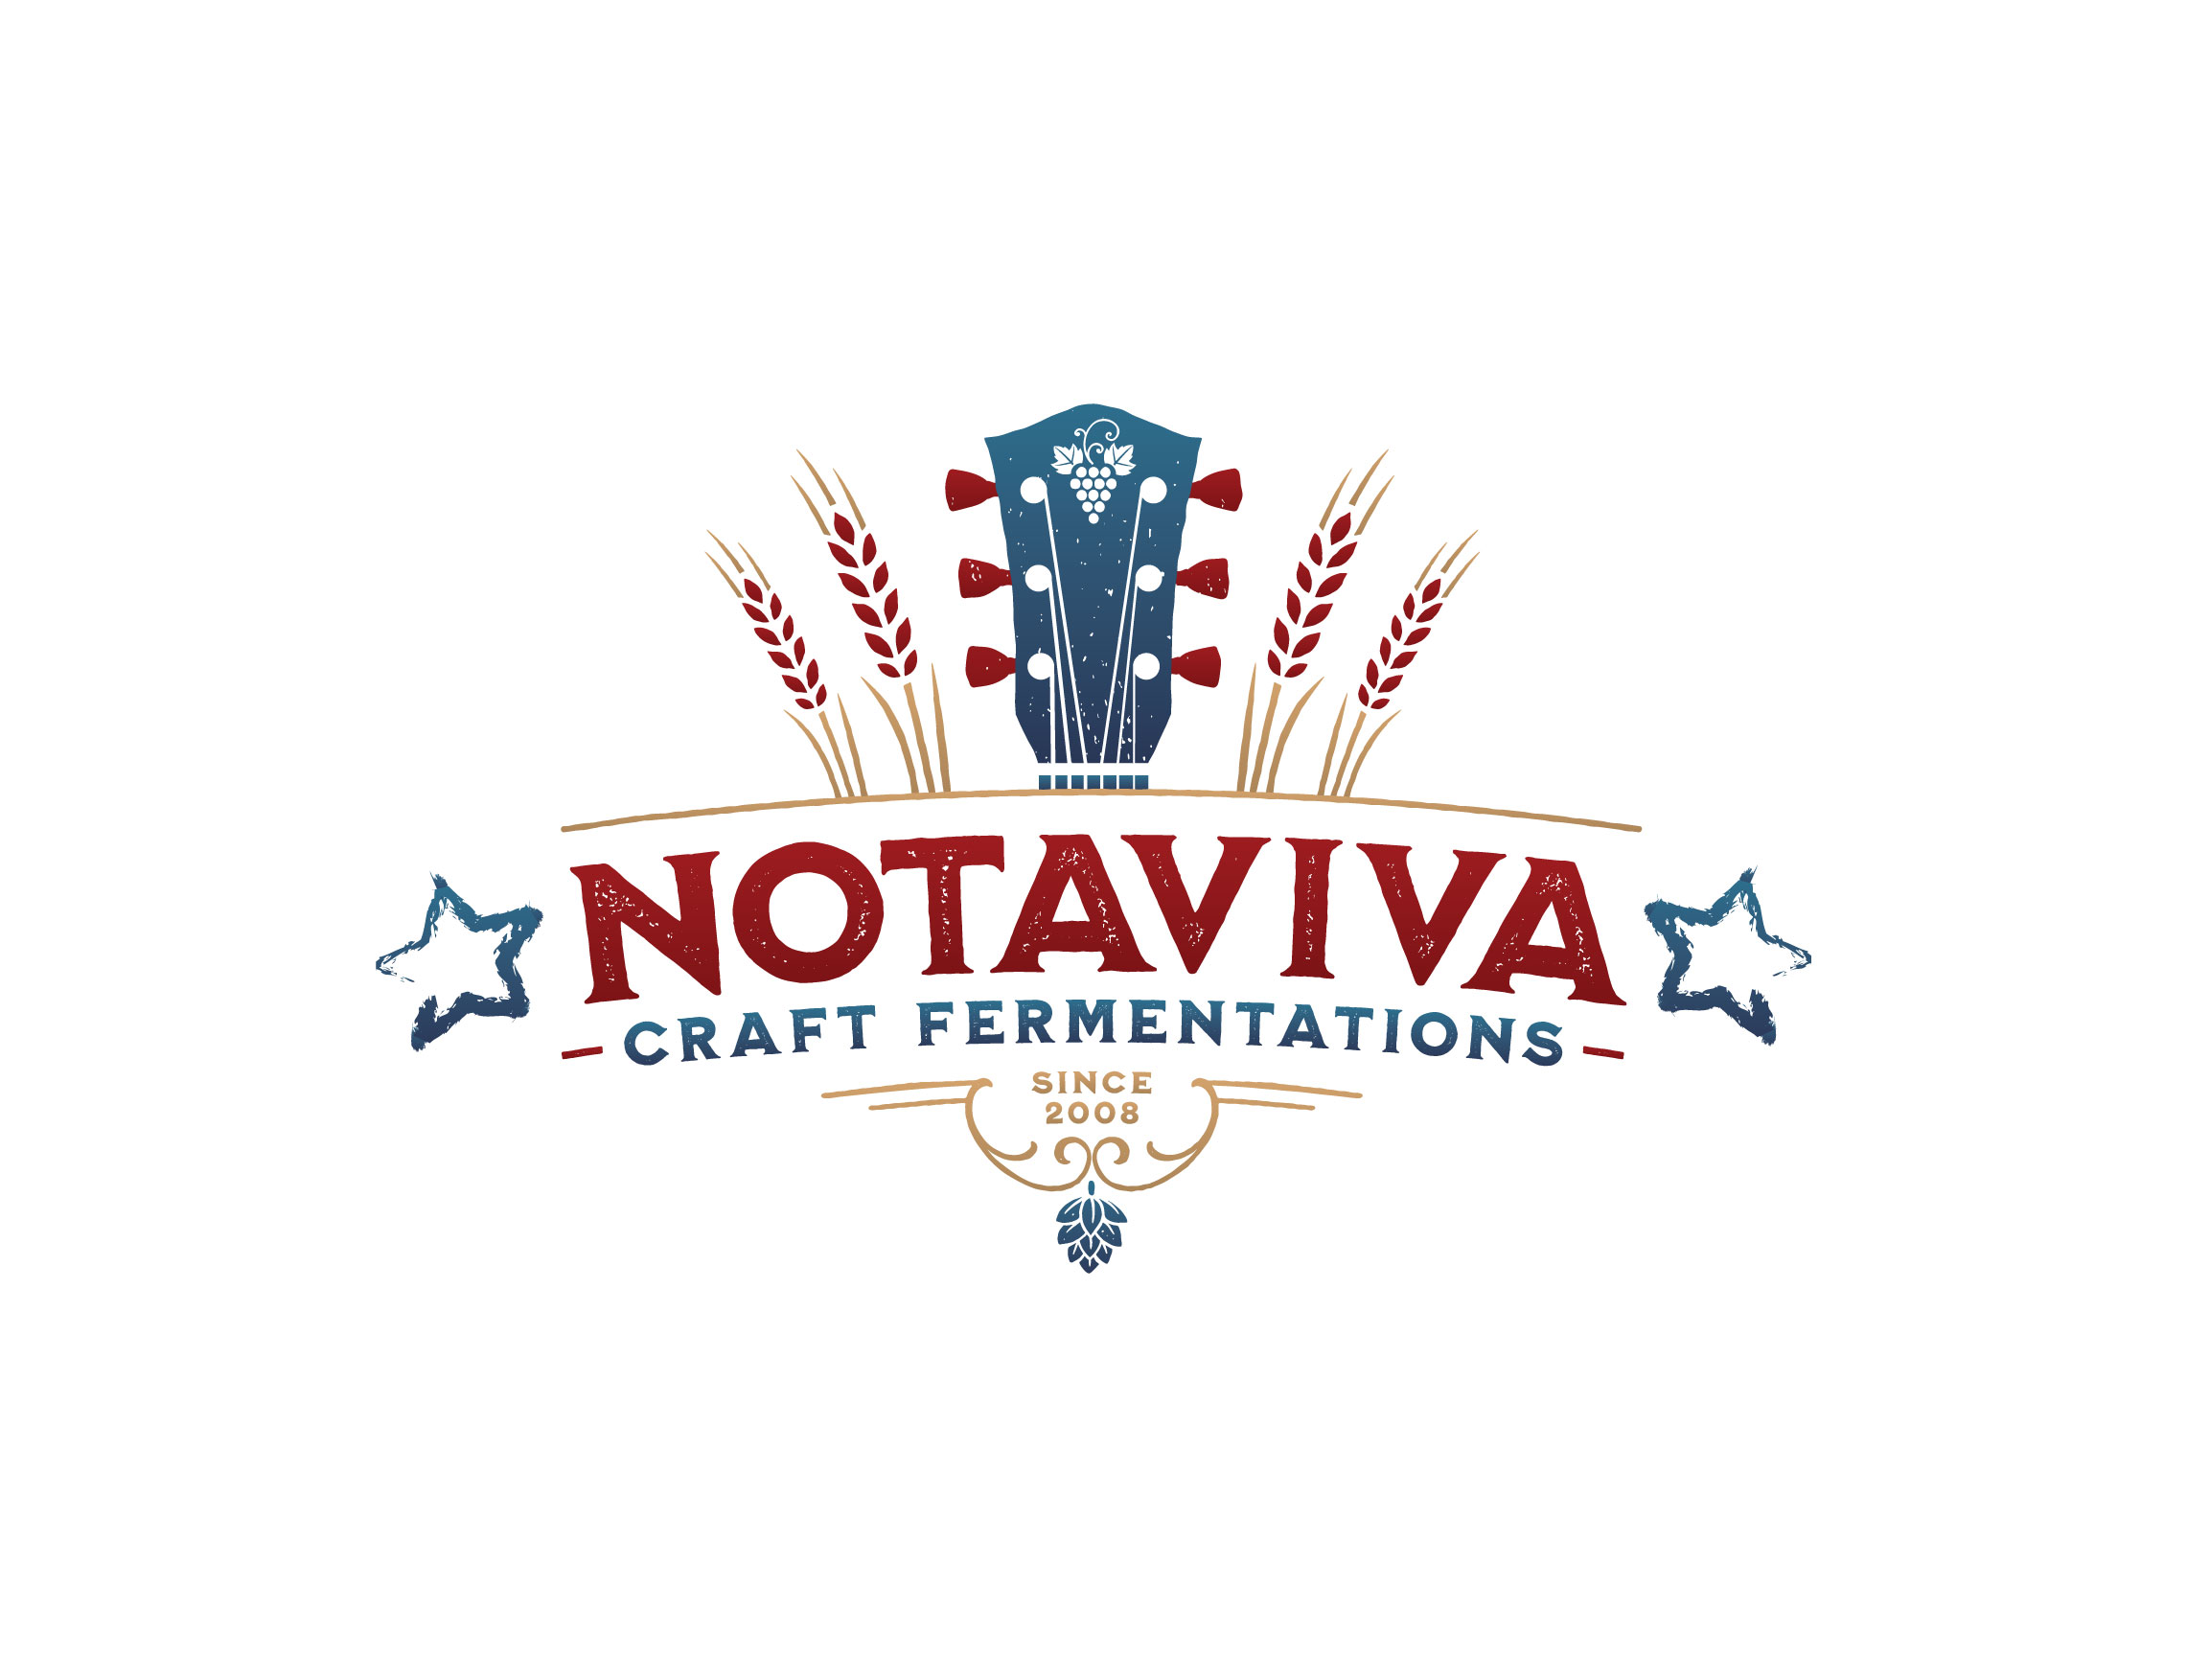 notaviva brewery winery craft fermentations